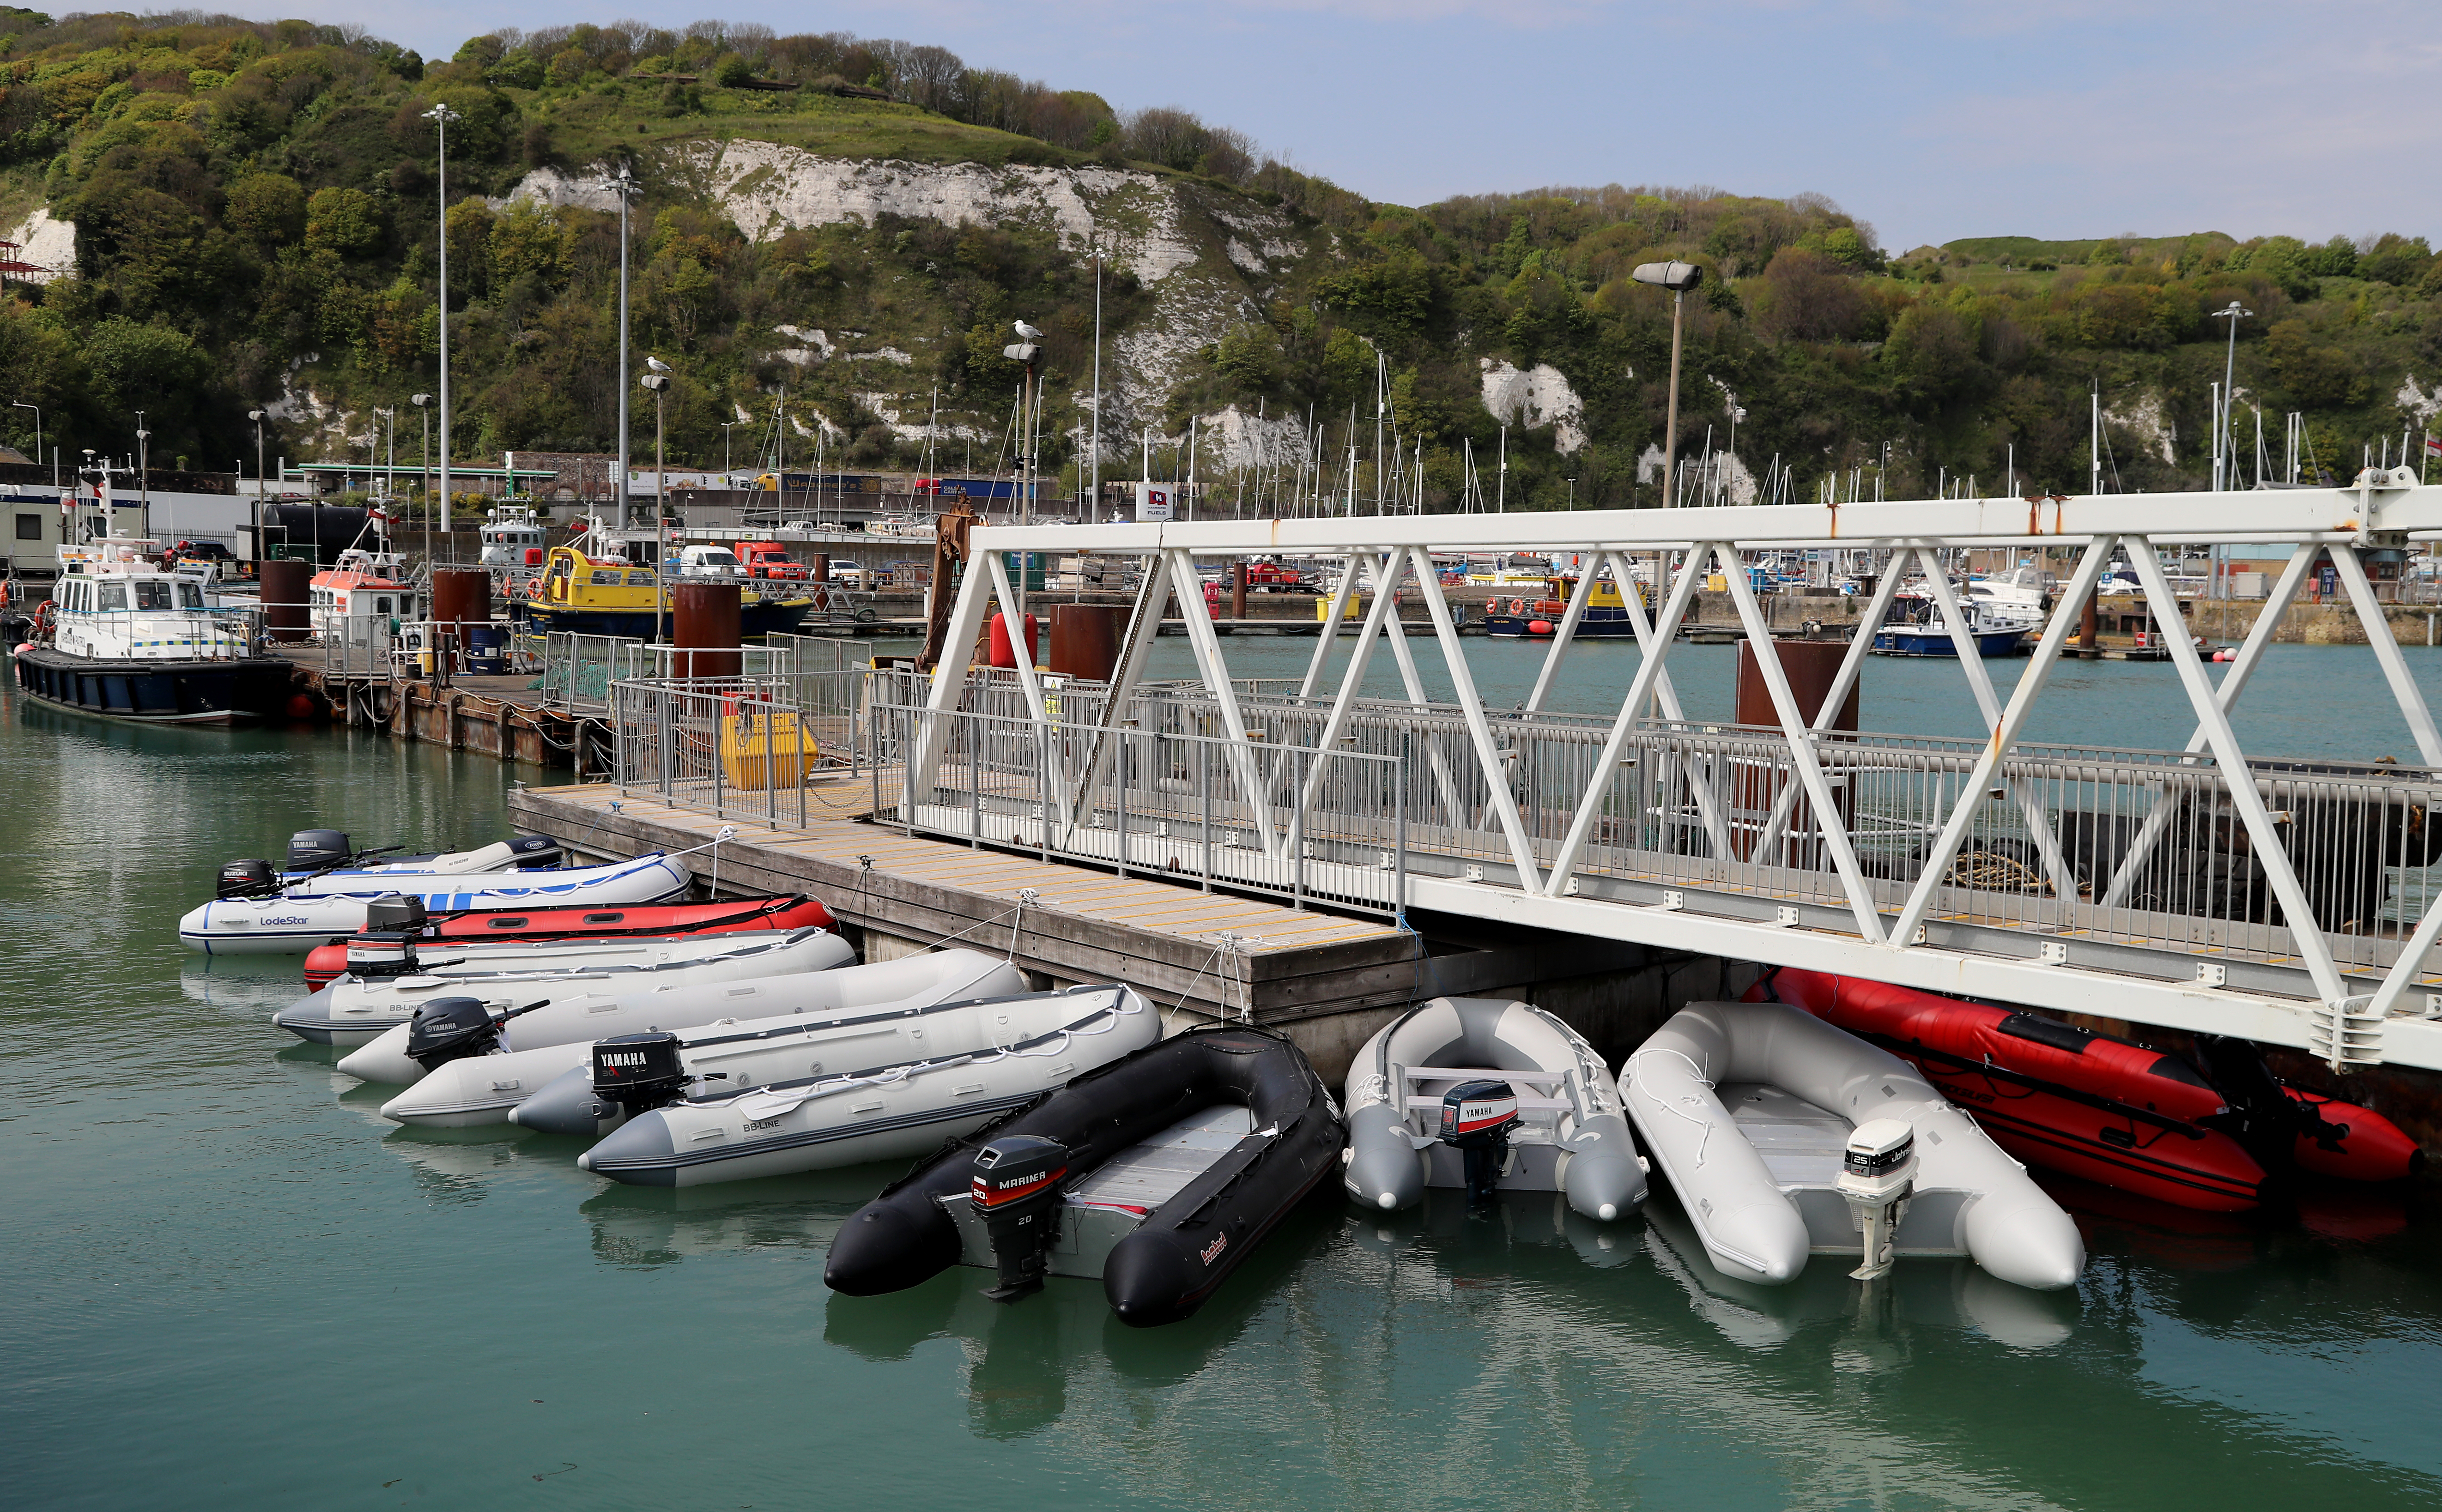 A view of dinghies tied up at The Port of Dover in Kent following being seized by Border Force officers after they were used in recent migrant crossing across The Channel as the UK continues in lockdown to help curb the spread of the coronavirus.